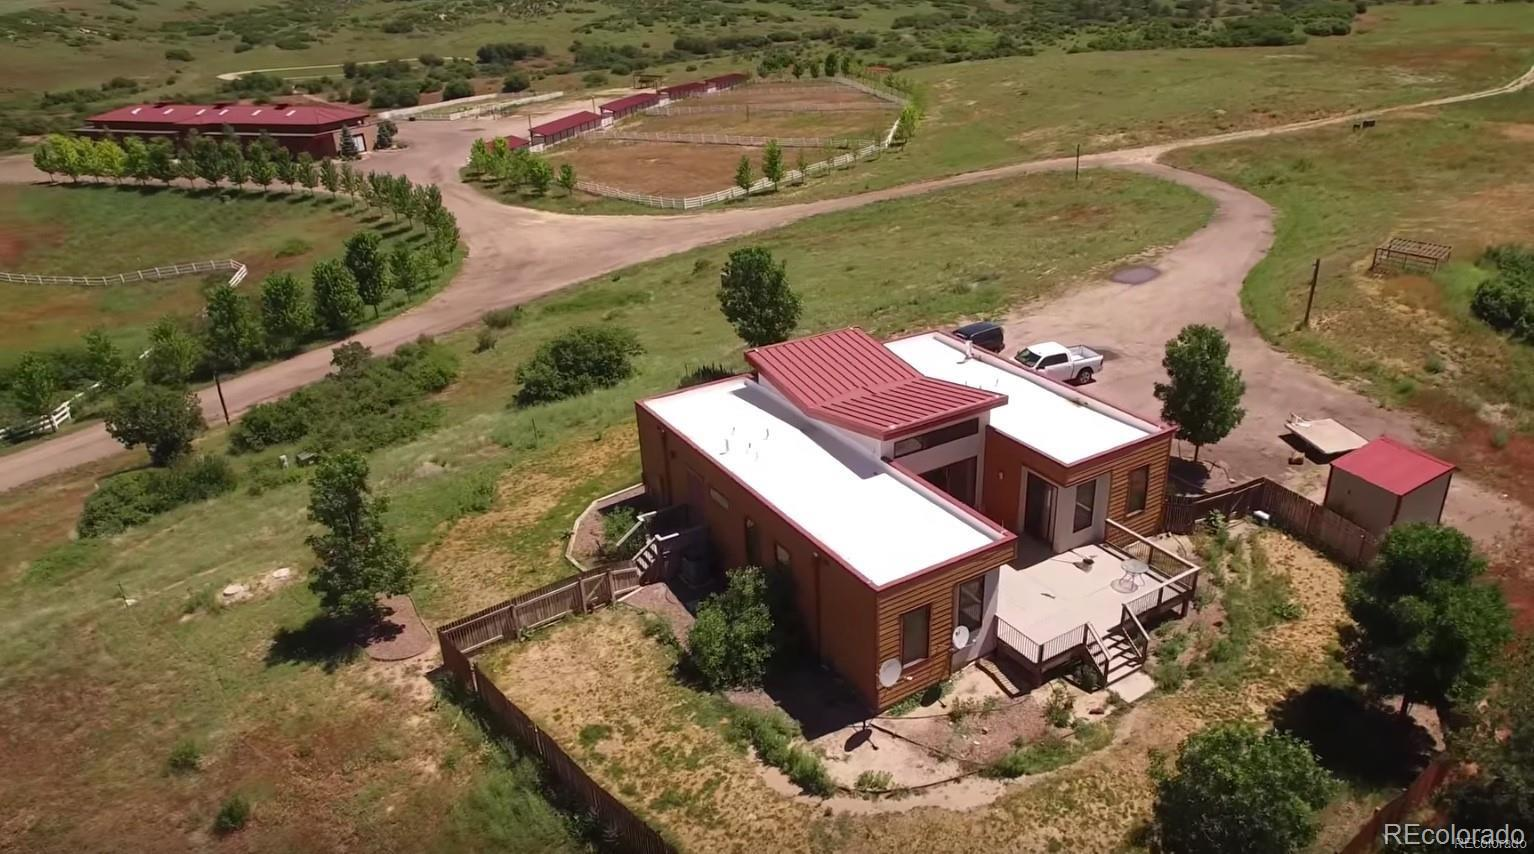 RANCH / EQUESTRIAN PROPERTY w/ UNBELIEVABLE VIEWS! This property has two contemporary homes and 18 stall barn. The homes each have 3 bedrooms, 2 bathrooms, open floor plan, plenty of windows and sliding glass doors providing lots of natural light, fenced yards, and picture perfect views of the mountains and front range. The barn offers everything an equestrian would need, including 18 stalls, tack rooms, vet room, office, laundry, bathroom, and additional storage. The property is located adjacent to Open Space on the East, and includes Water Rights! Don't miss this opportunity to live in seclusion, yet be 30 minutes within retail shopping, dining, and plenty of outdoor areas (Chatfield Reservoir, Deckers, Waterton Canyon). Almost $1,000,000 in Water Rights on 3 different aquifers.